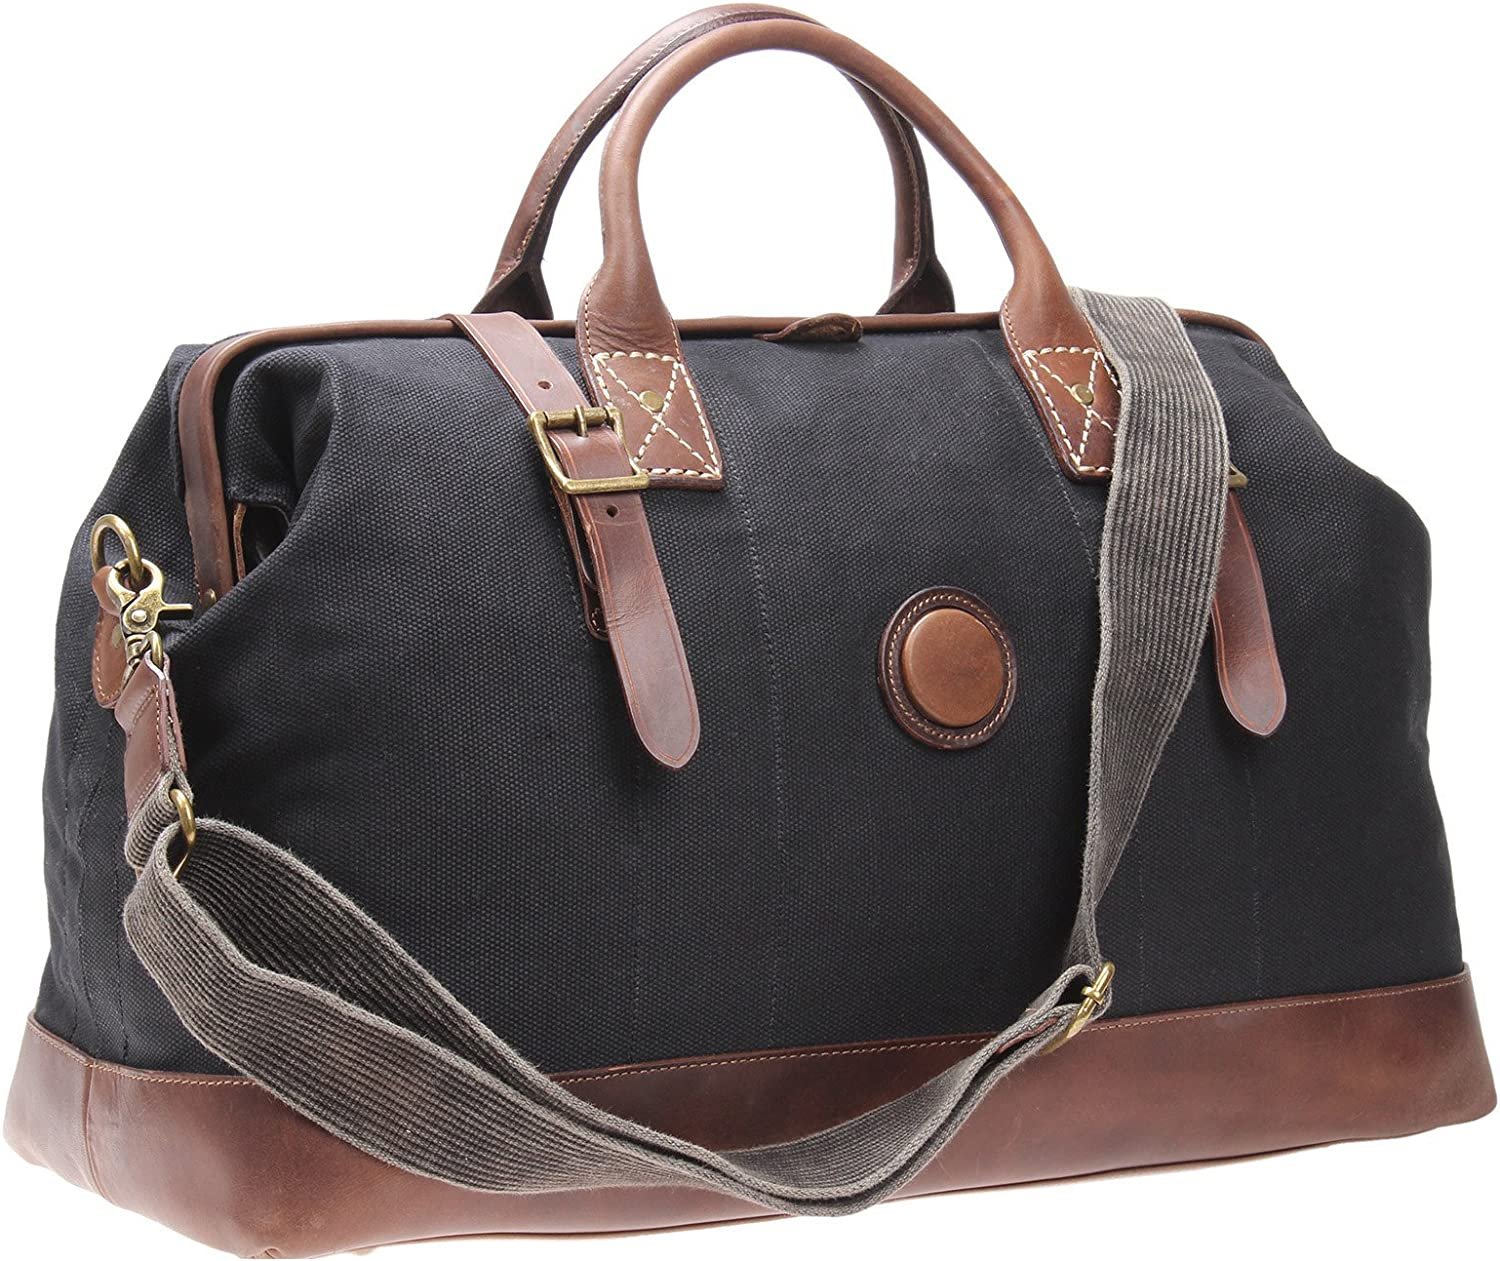 Leather Weekender Bag Canvas Overnight Travel Duffels Gym Tote Large A002 (Black)